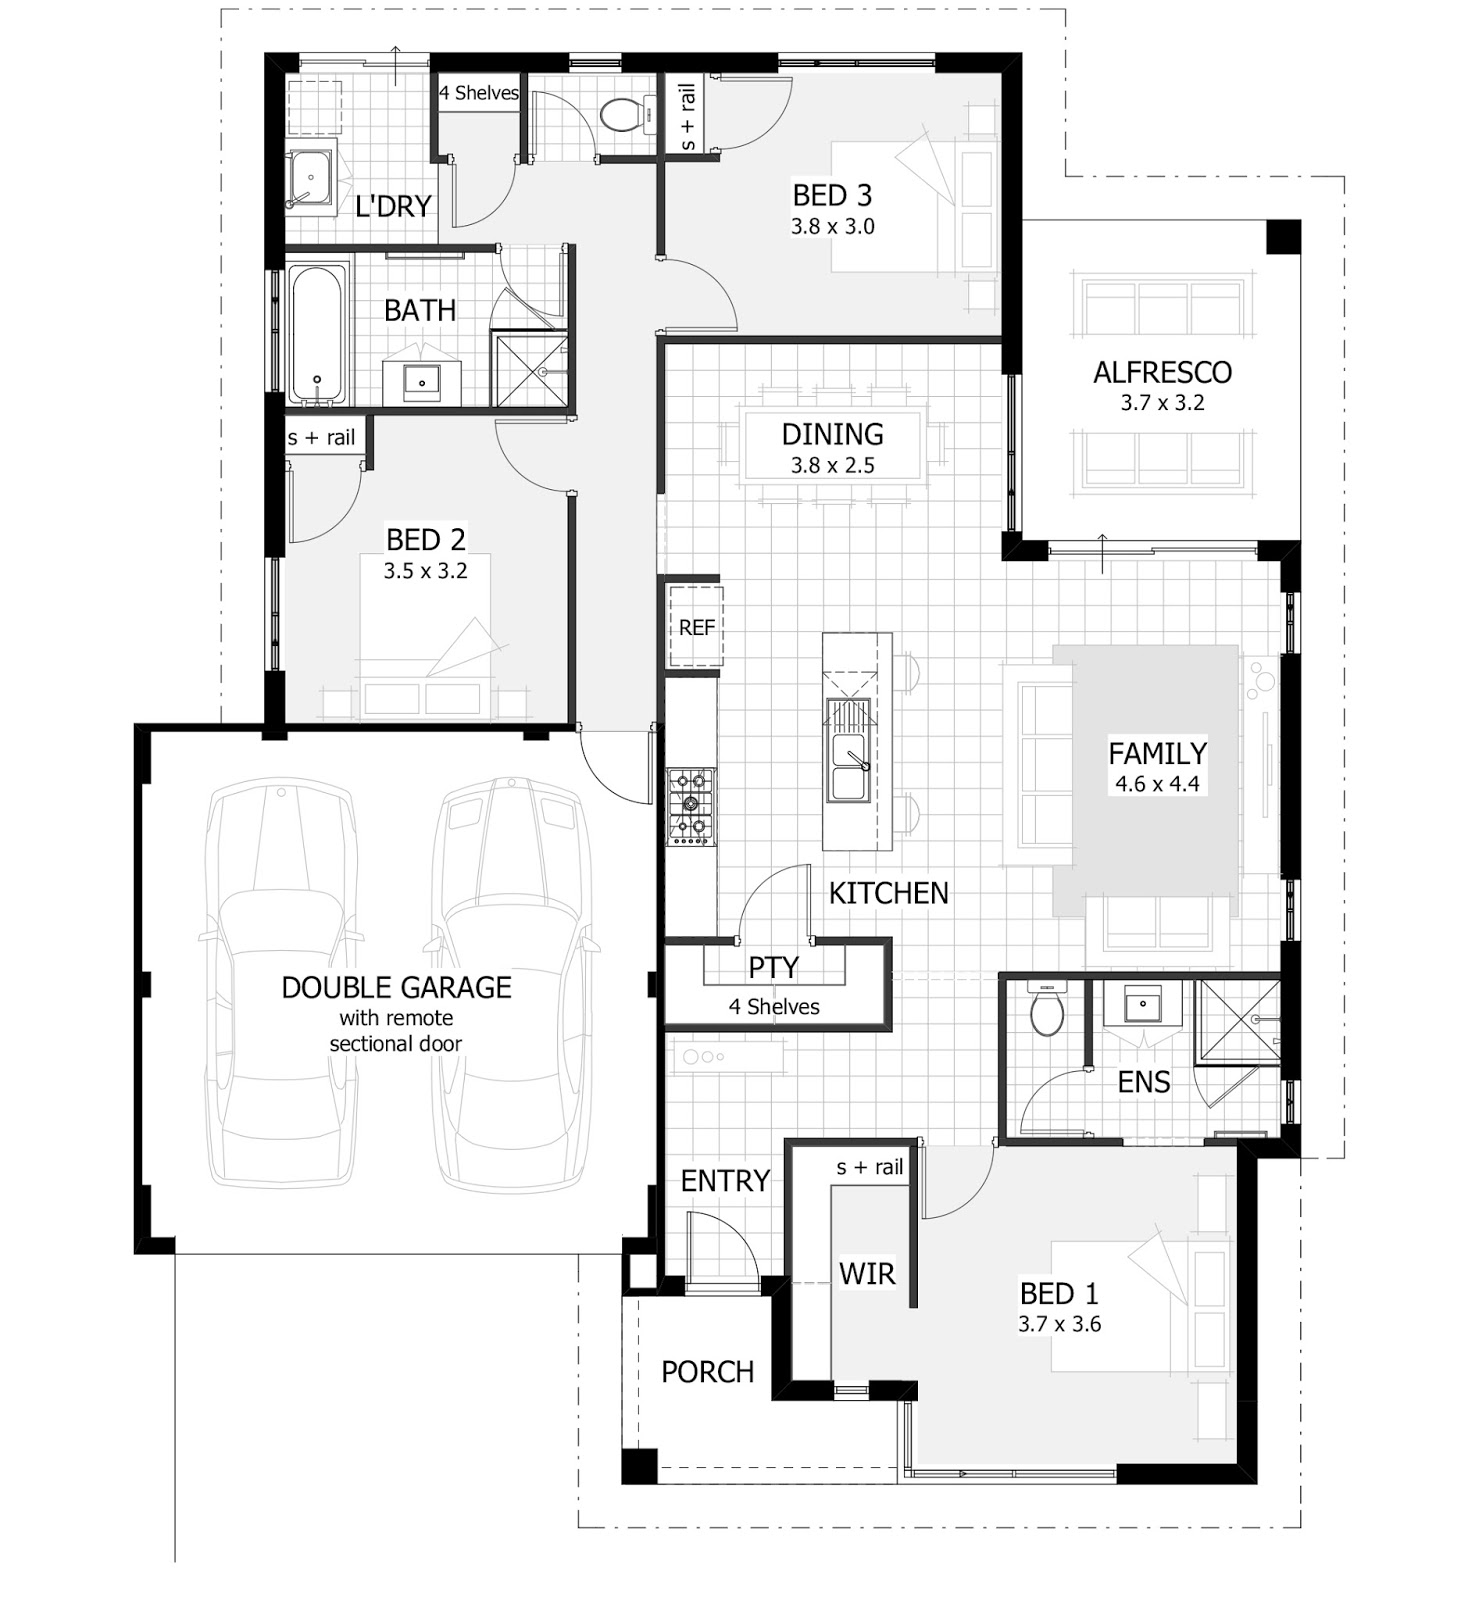 Luxury holiday small villas floor plans with 3 to 4 3 bedroom villa floor plans